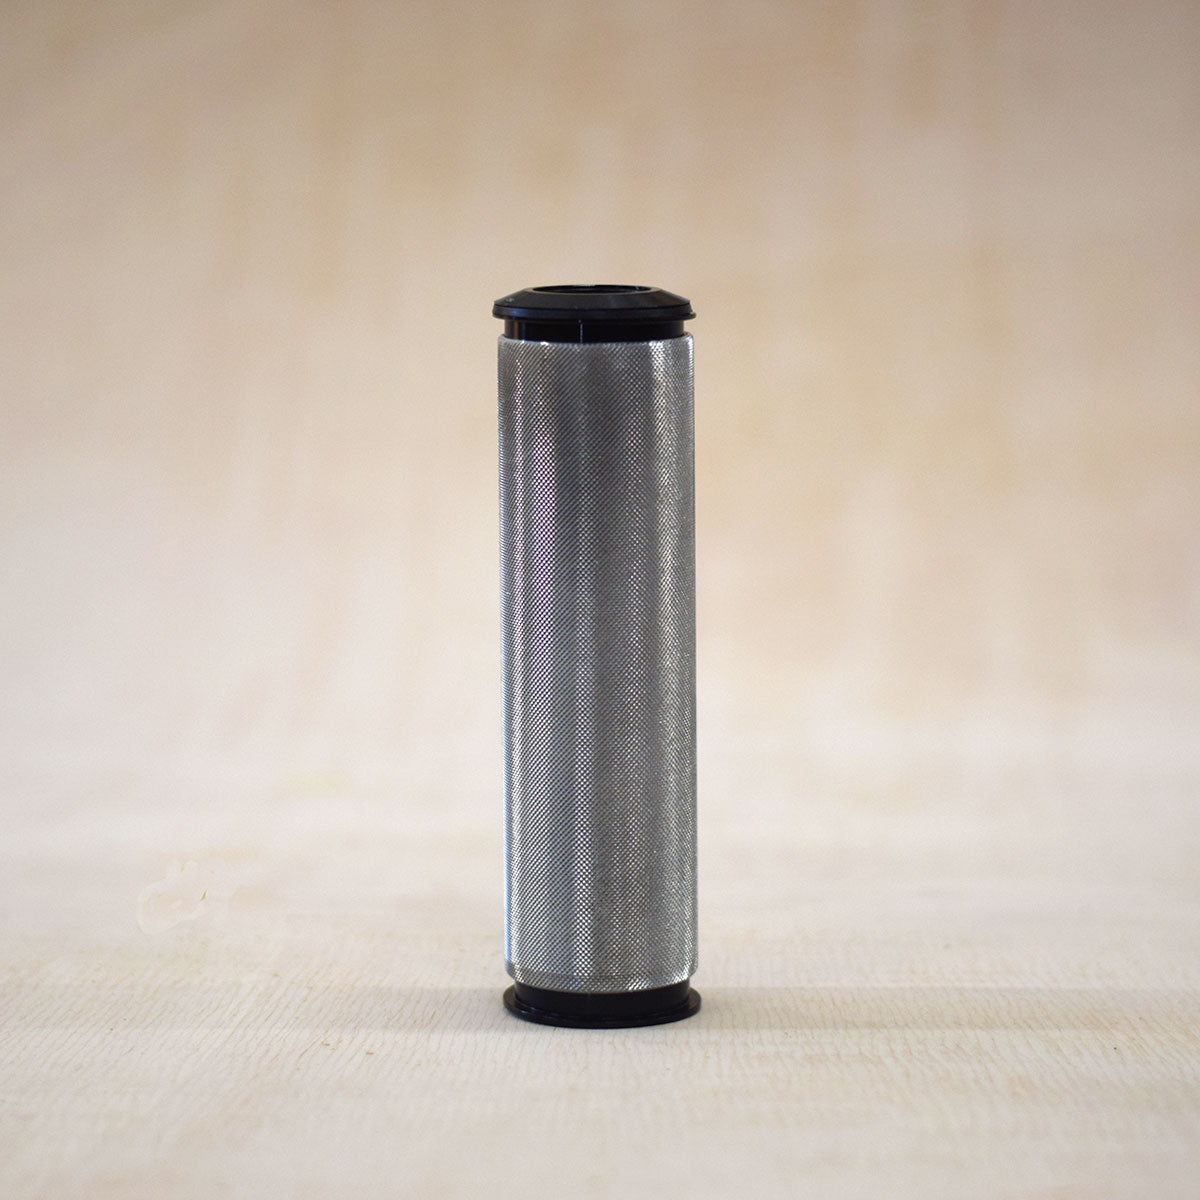 44mm Knurled Headtube